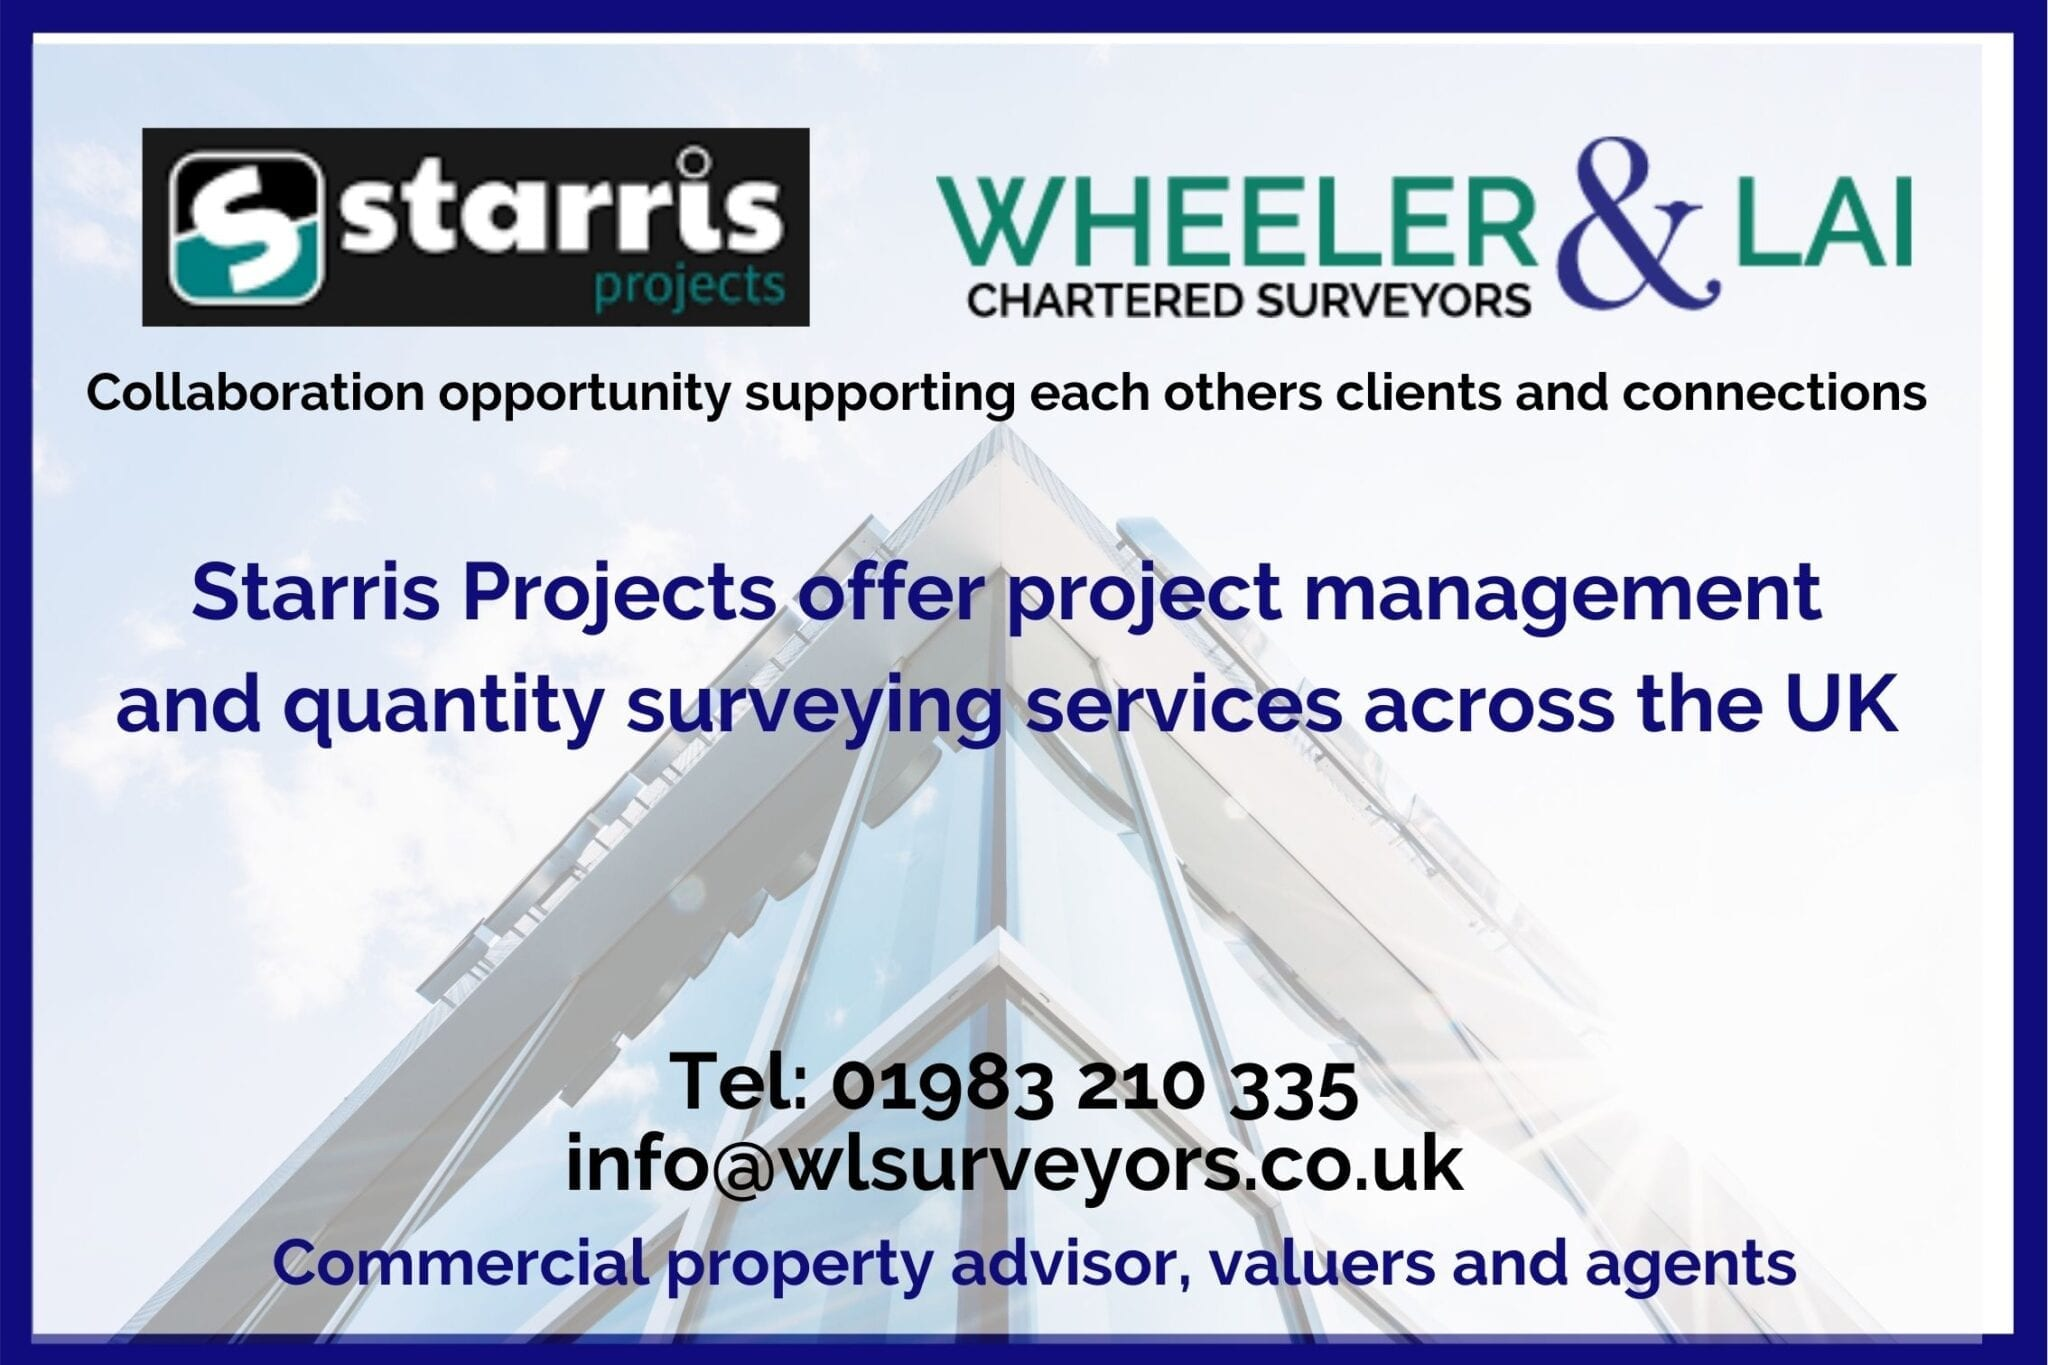 Commercial property office building with wheeler and lai and starris project logos about collaboration